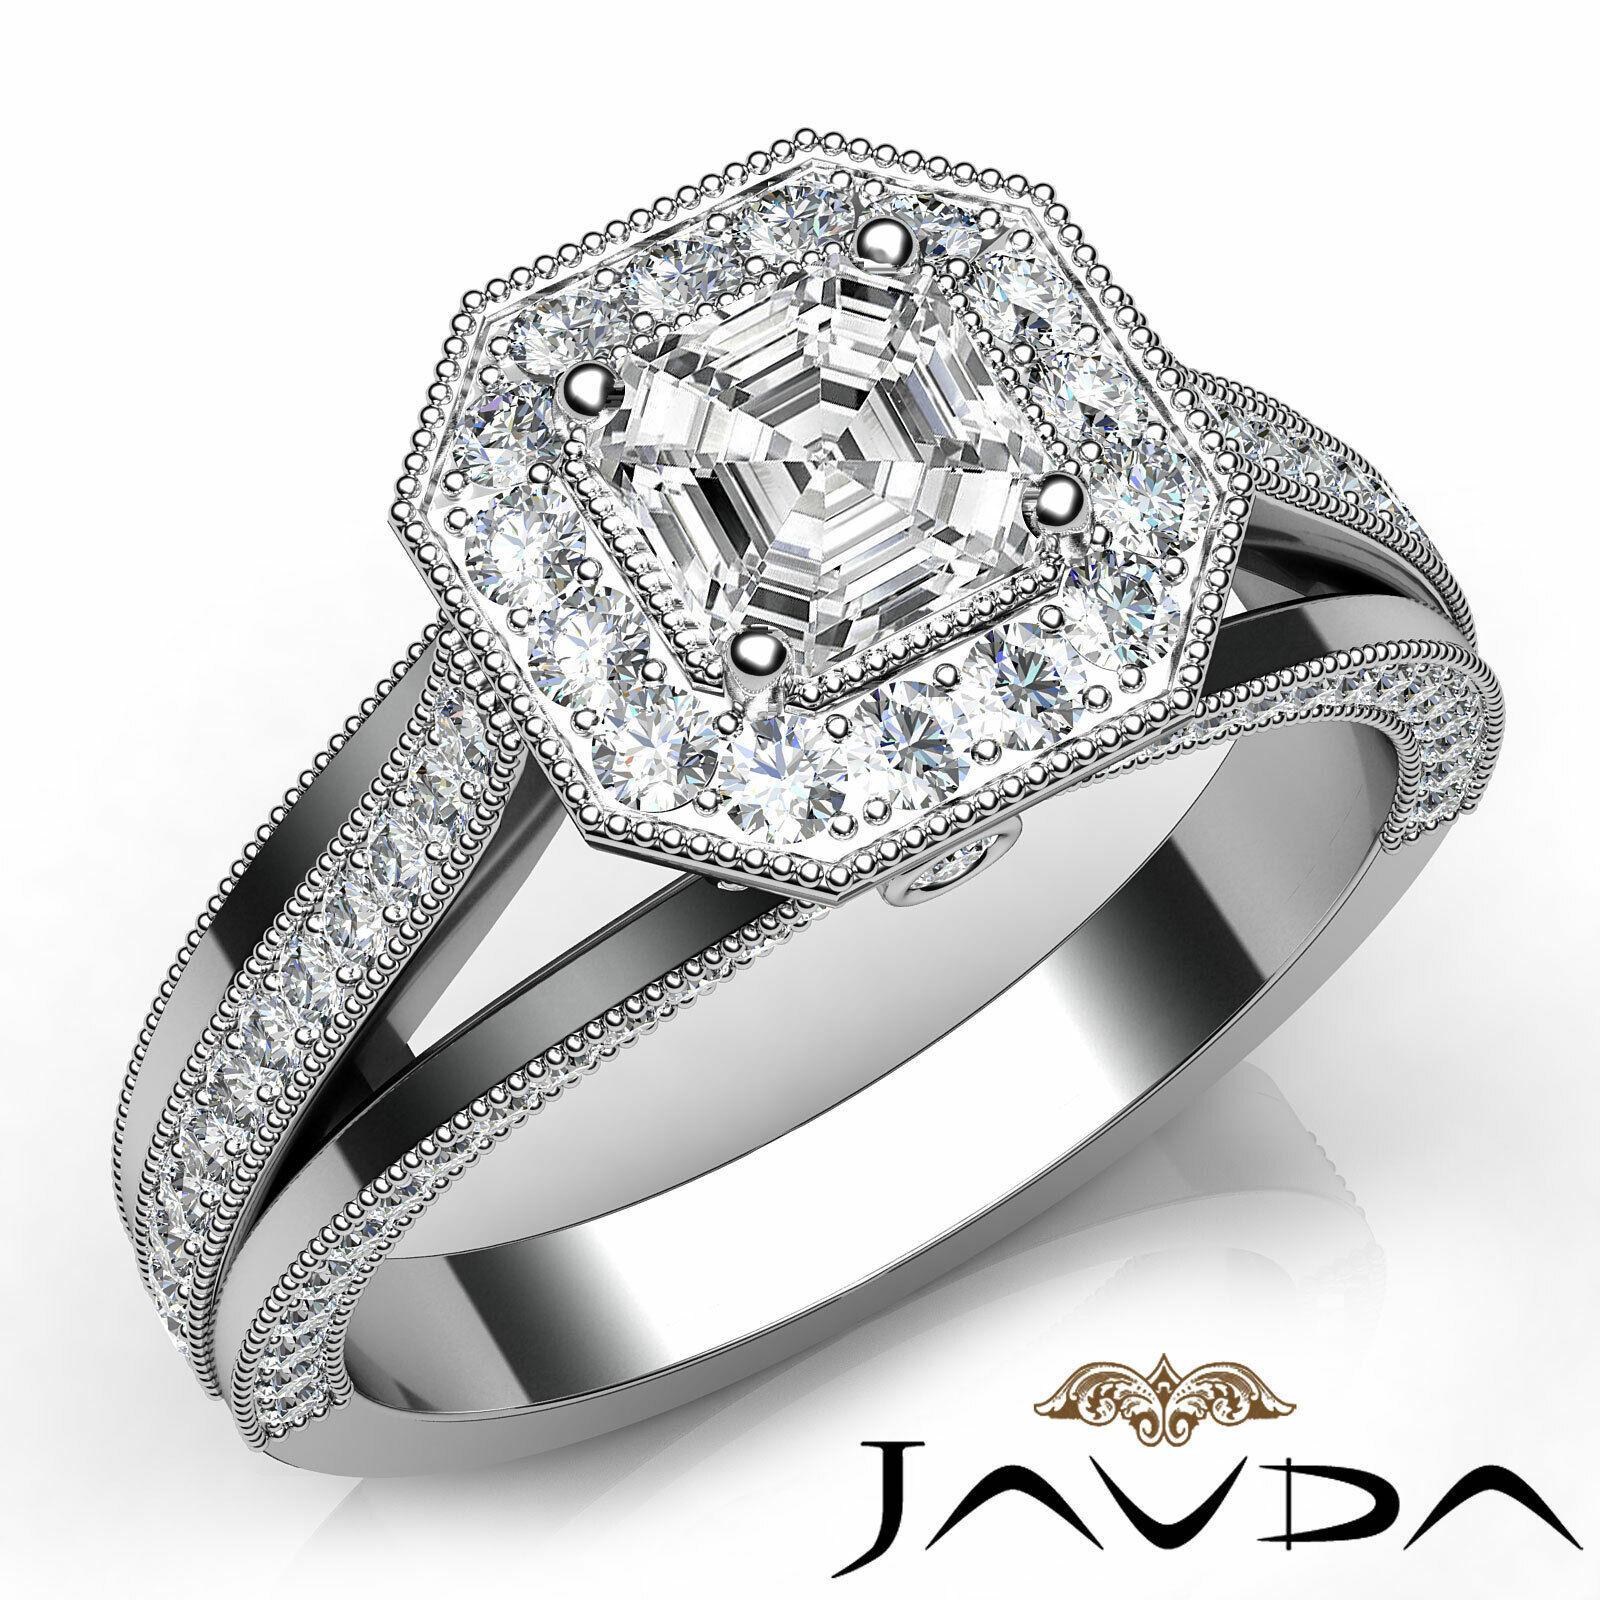 Asscher Cut Halo Pave Set Diamond Engagement Ring GIA F VS2 18k White Gold 1.4Ct